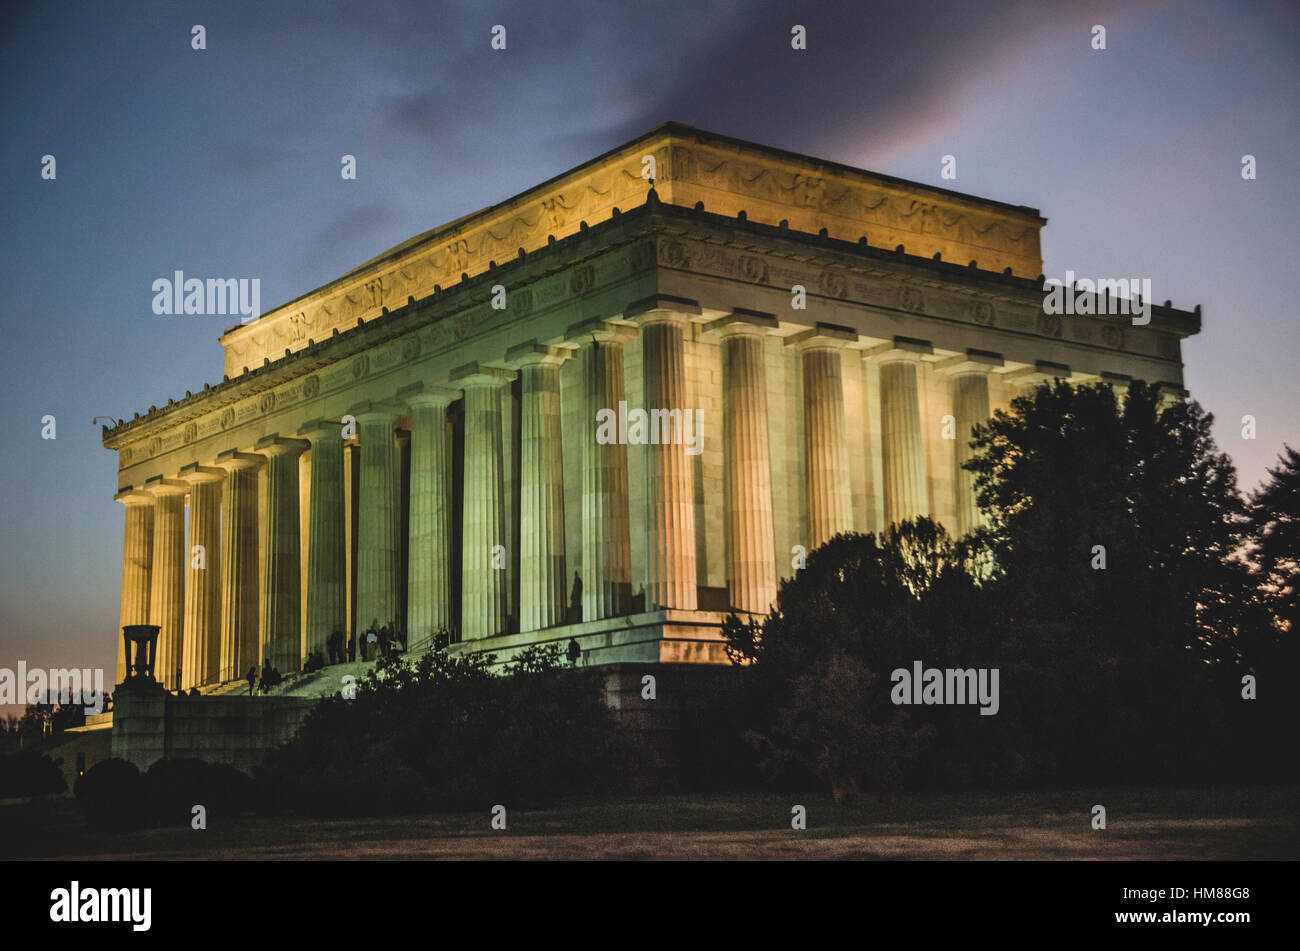 Lincoln Memorial exterior al anochecer, Washington, DC, EE.UU. Imagen De Stock